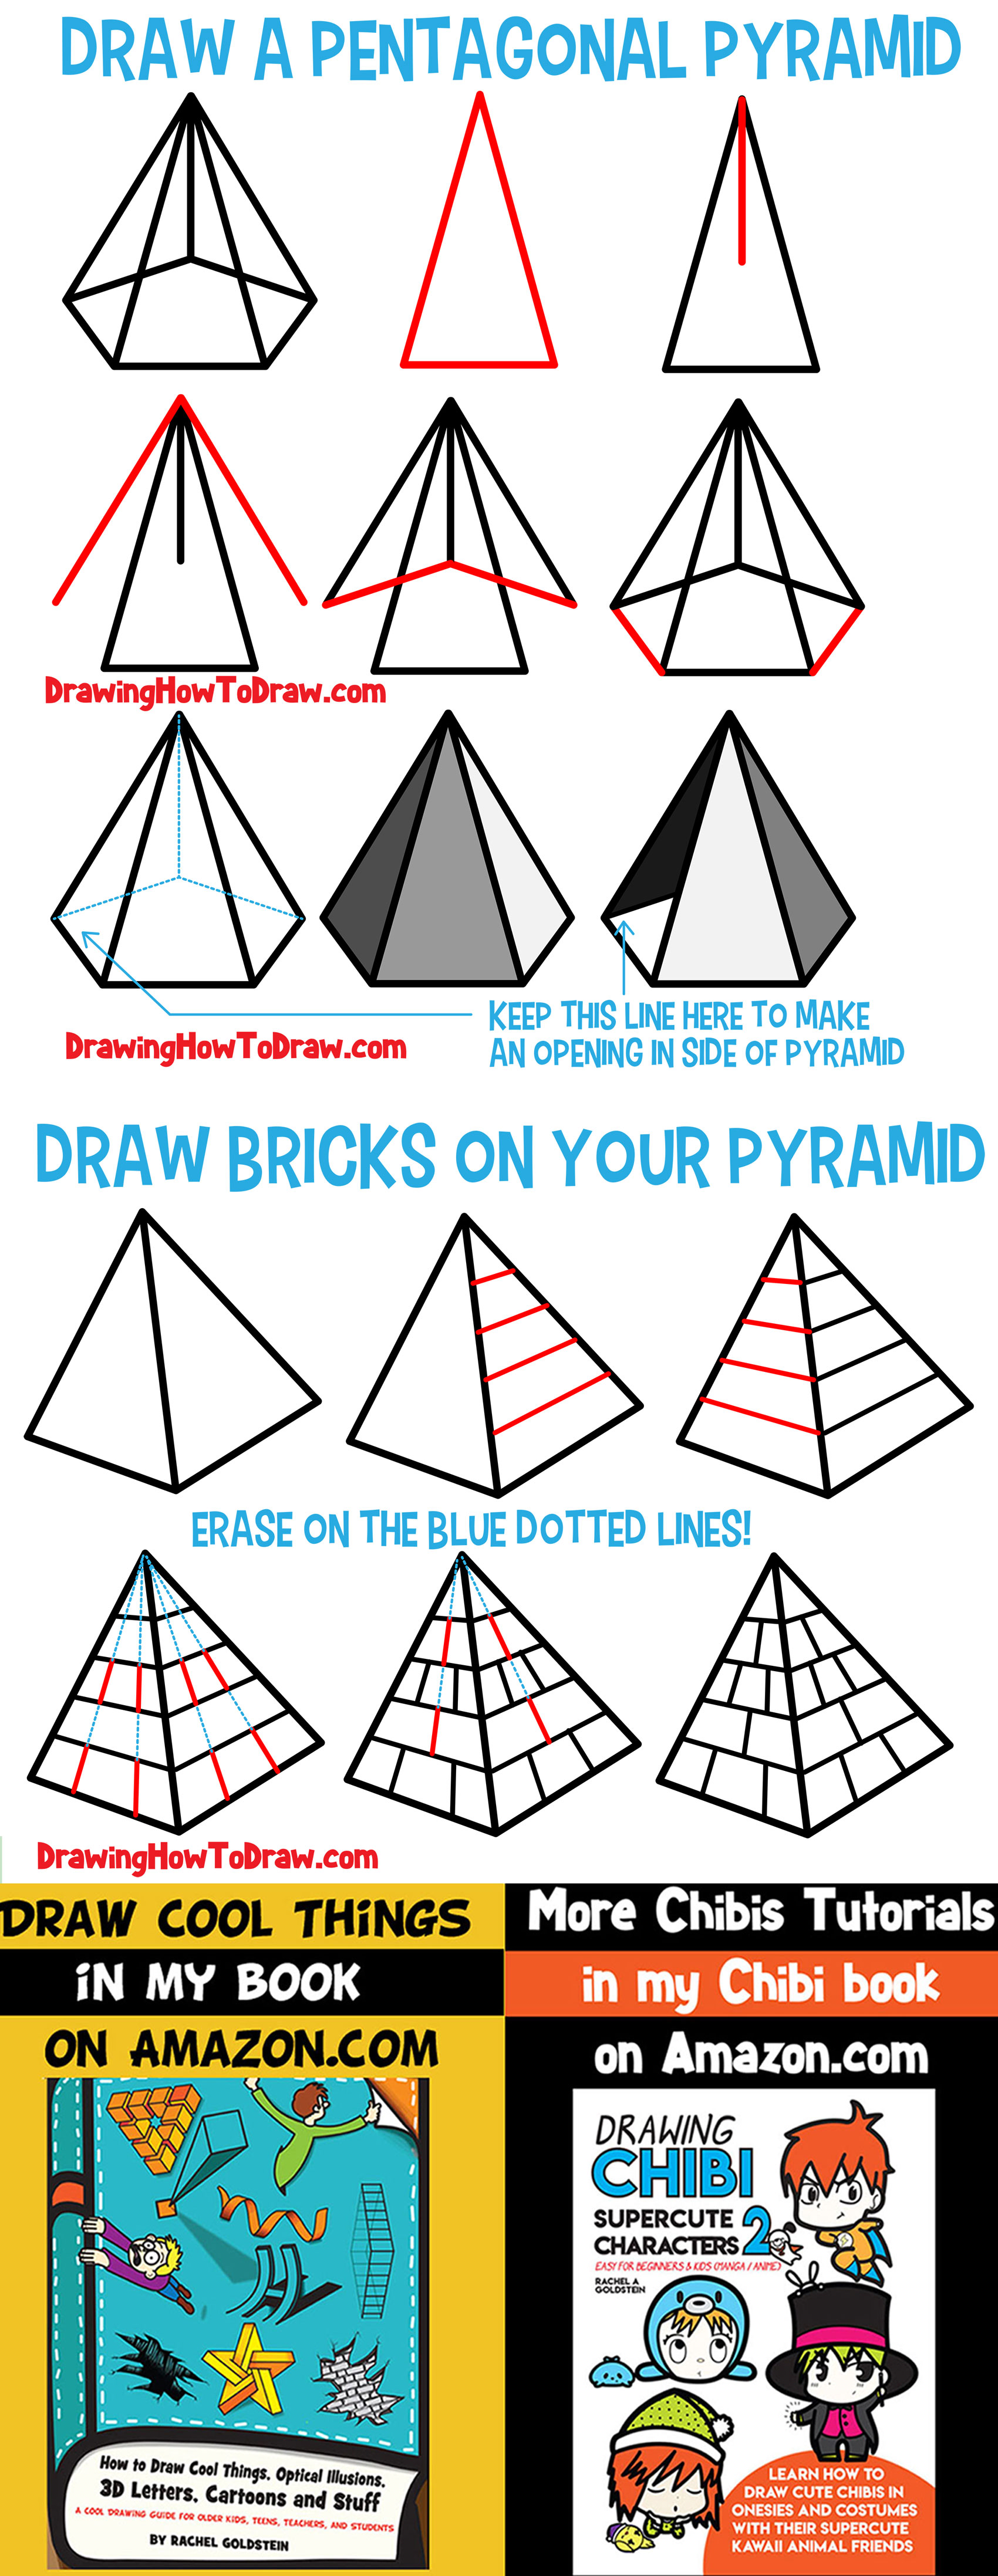 Learn How to Draw Pyramids : Guide to Drawing & Shading Pyramids from Different Angles for Beginners